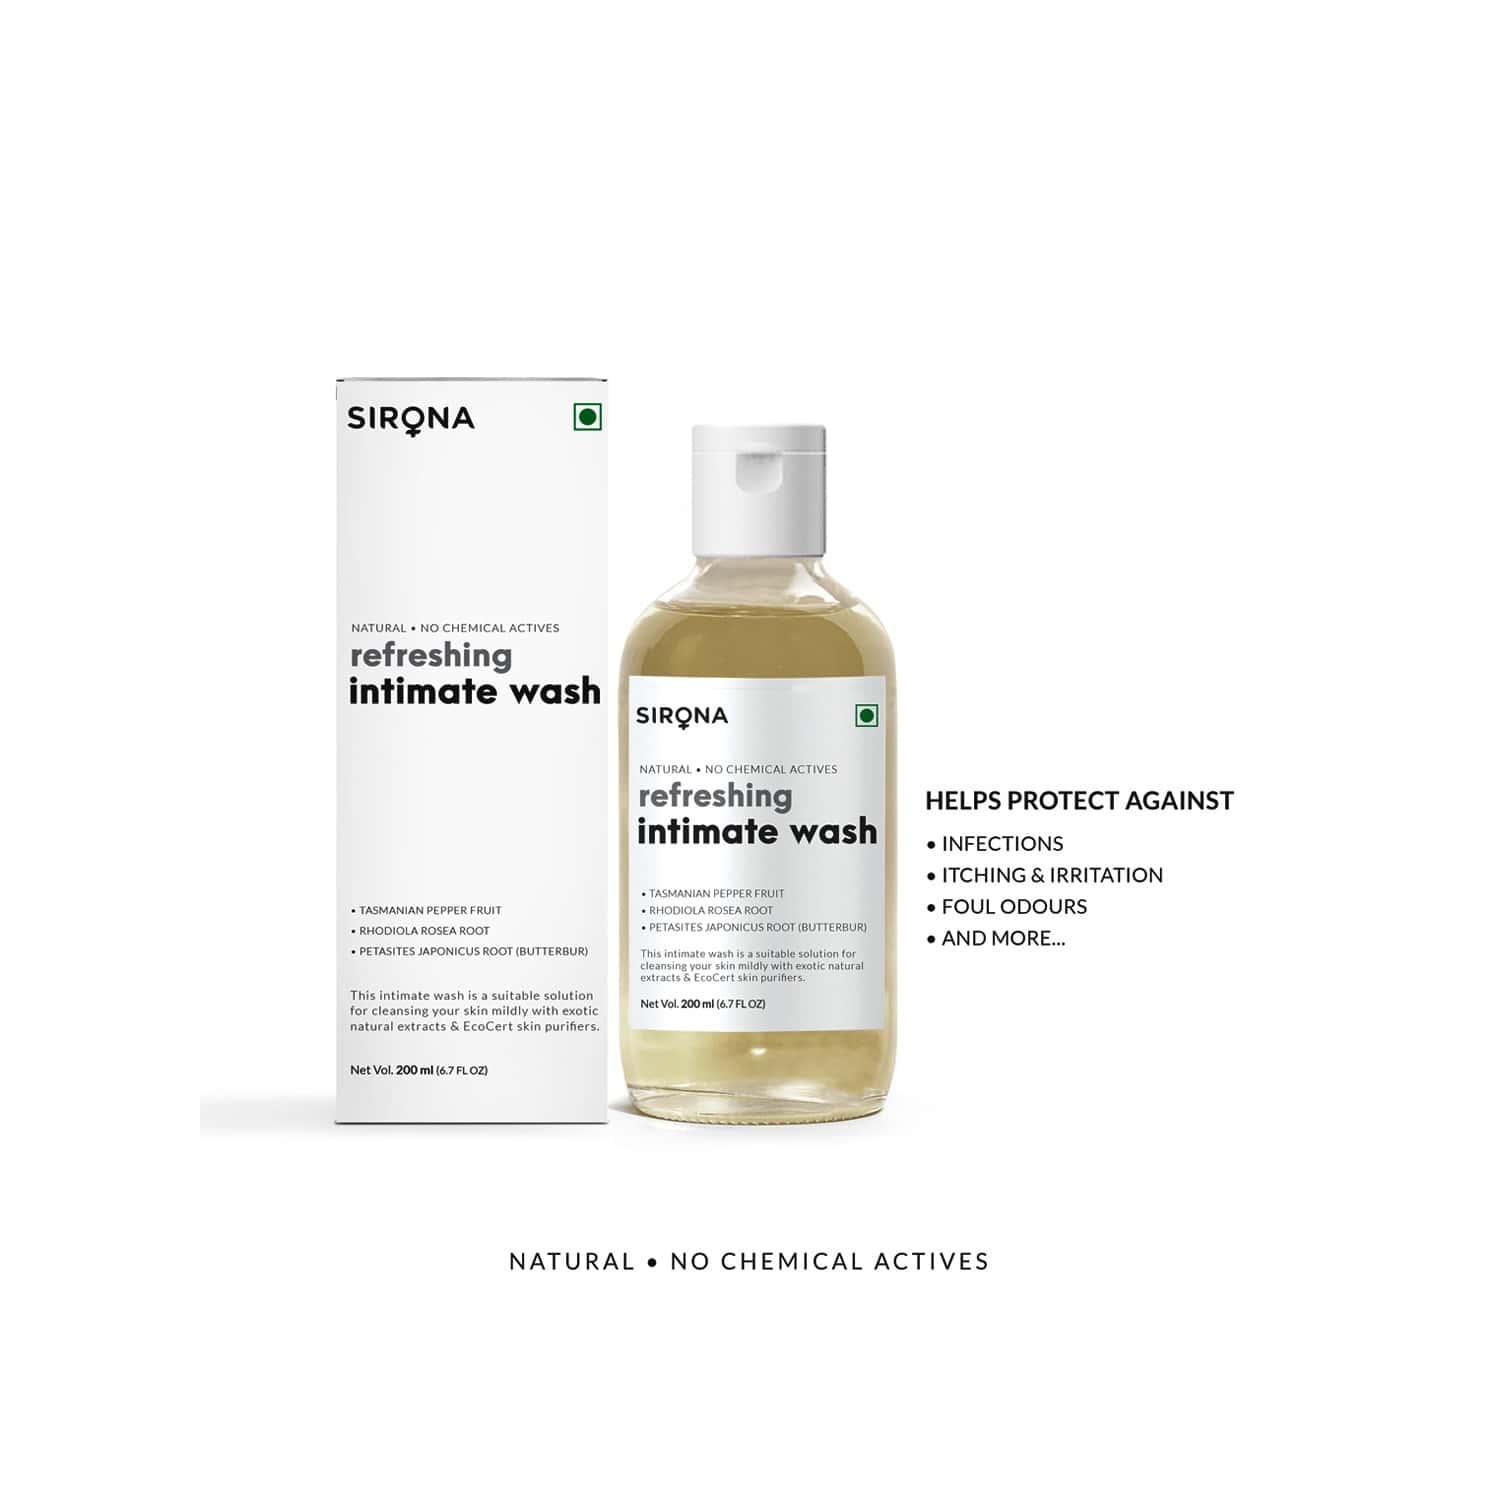 Sirona Natural Ph Balanced Intimate Wash With 5 Magical Herbs & No Chemical Actives - Helps Reduce Odor, Itching & Maintains Hygiene For Men And Women - 200 Ml